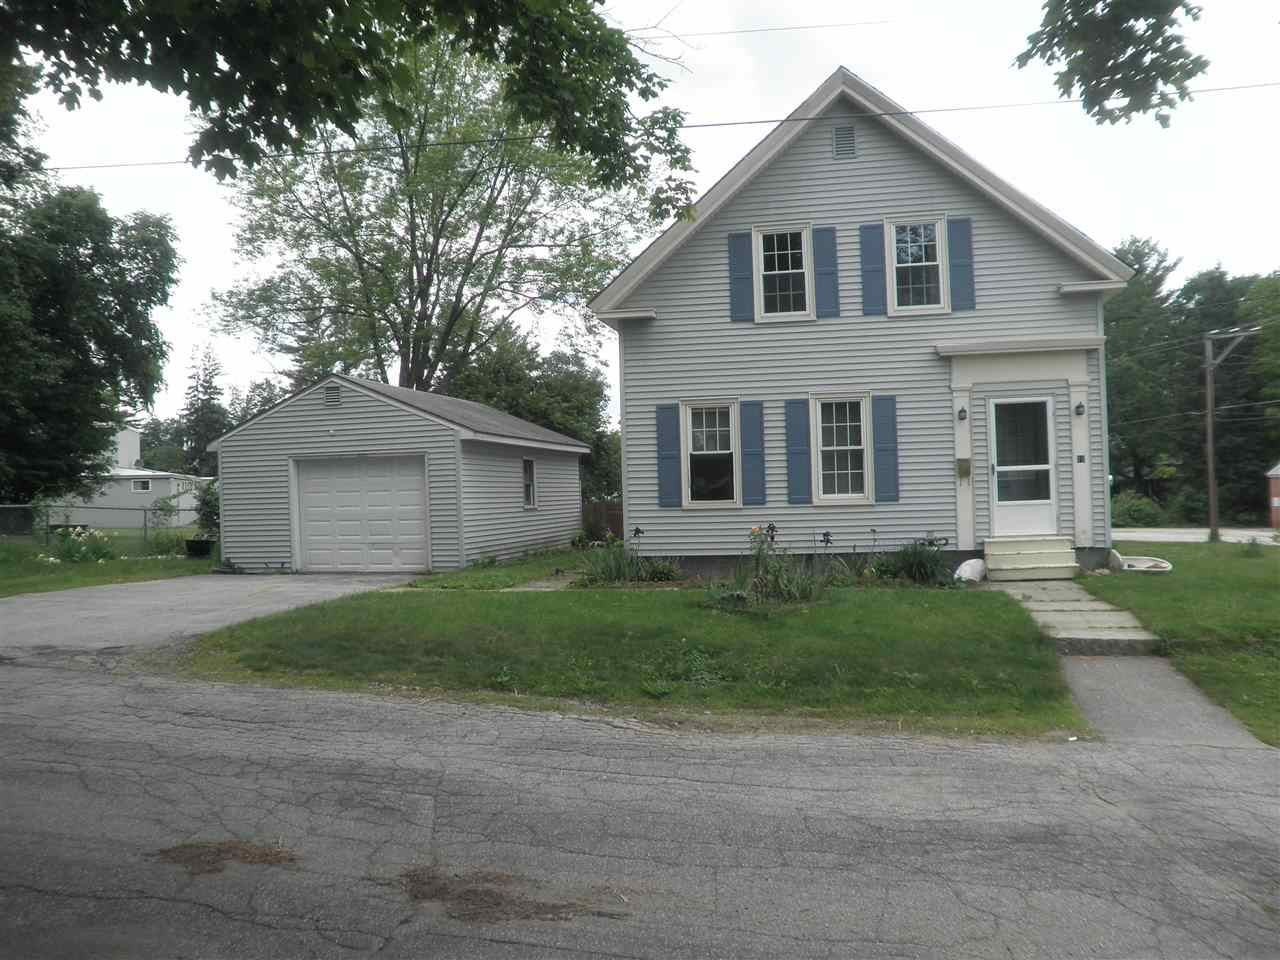 19 Tanner Street, Concord, NH 03303 - MLS#: 4789385